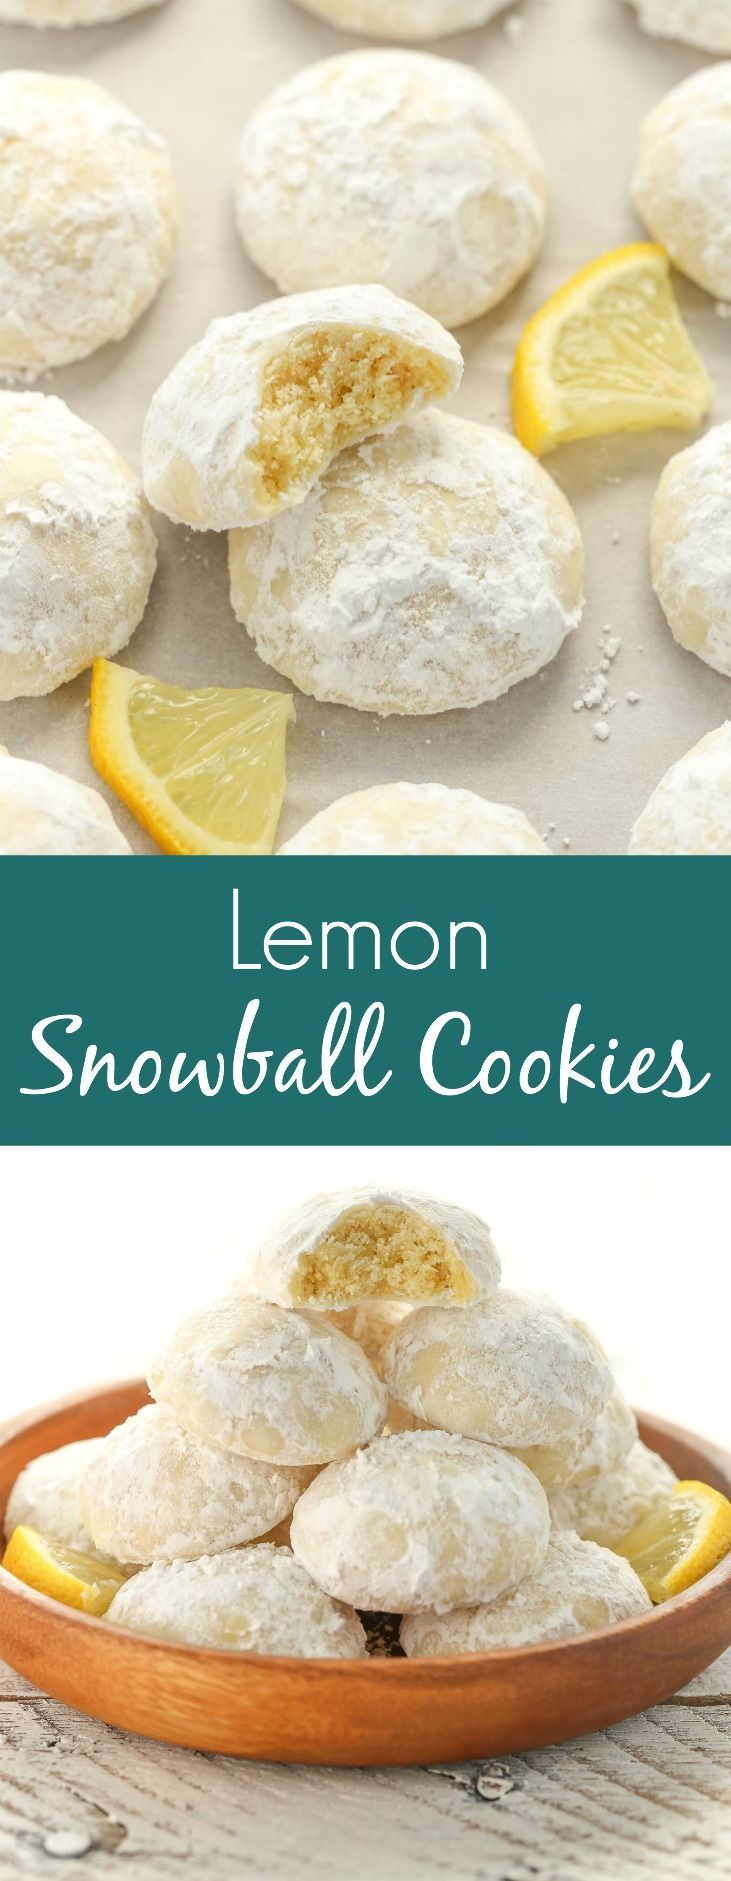 Buttery and tender lemon cookies rolled in powdered sugar. These Lemon Snowball Cookies are so easy to make, incredibly delicious, and they don't require any dough chilling!